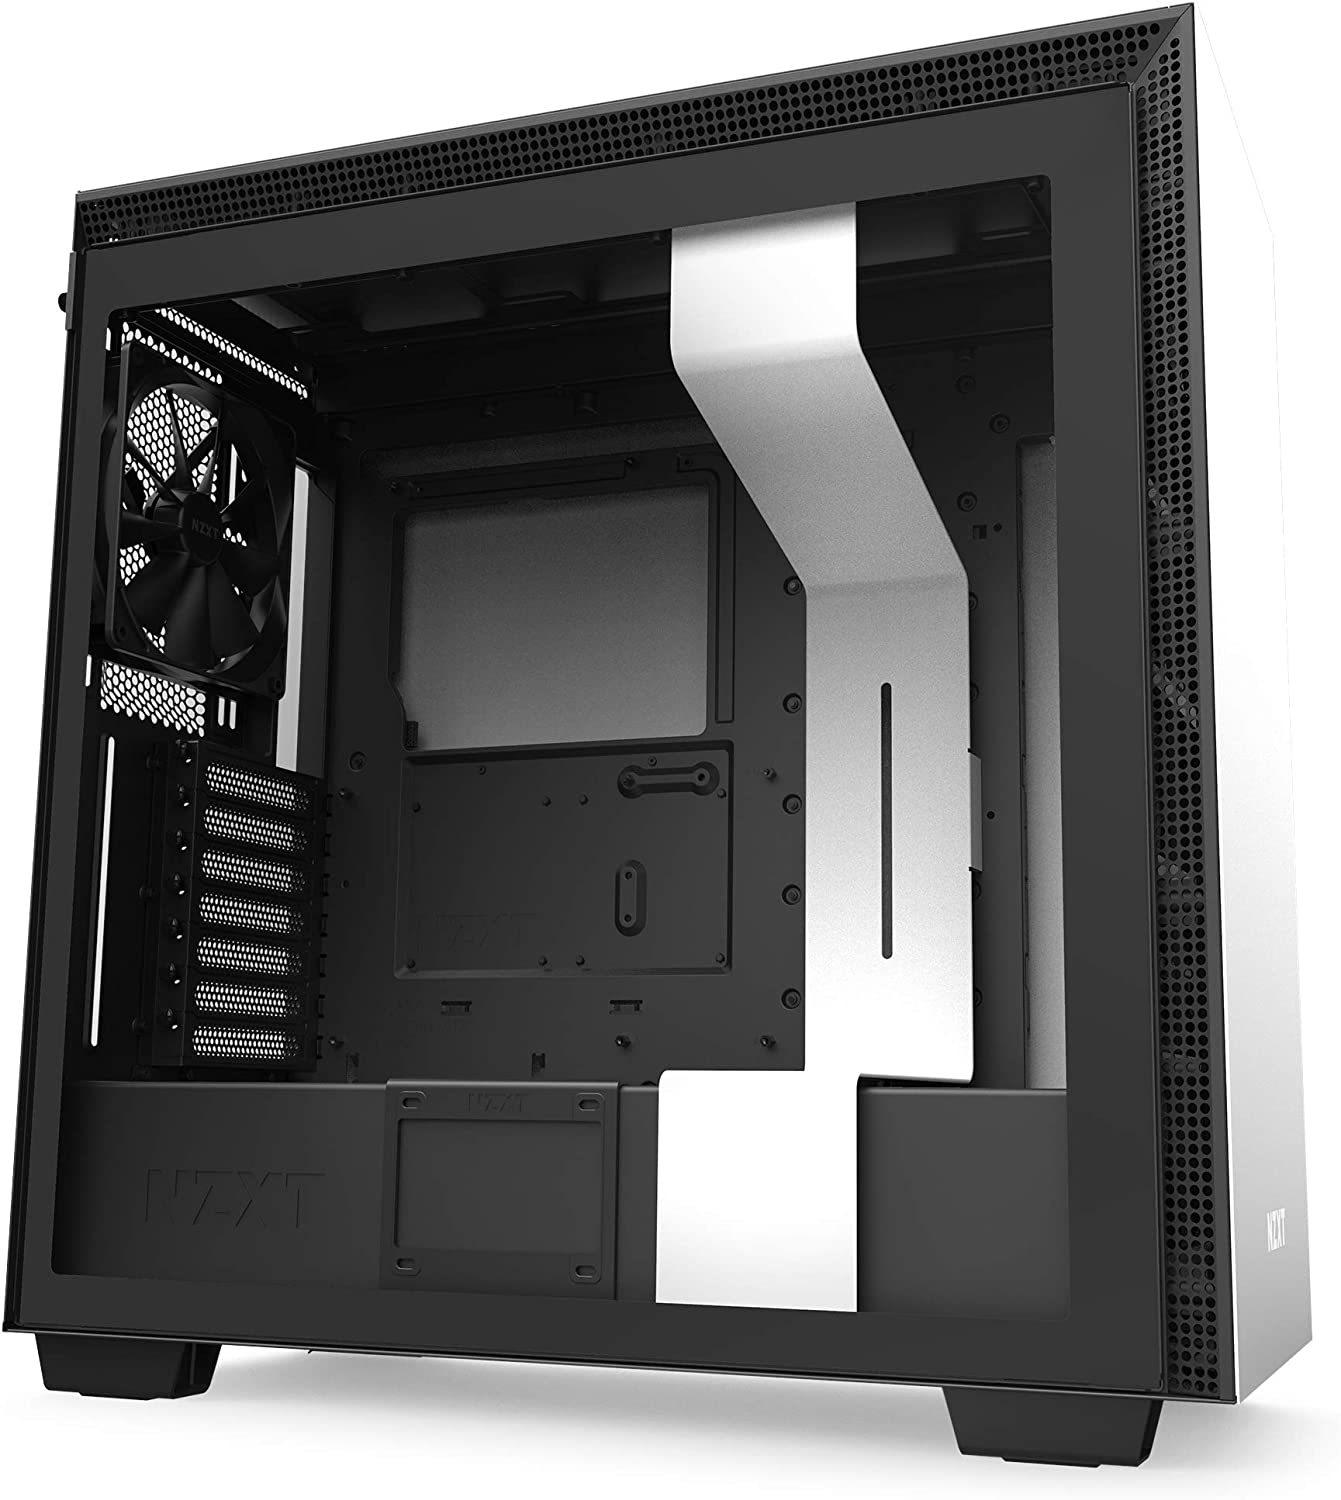 NZXT H710 - CA-H710B-W1 - ATX Mid Tower PC Gaming Case - Front I/O USB Type-C Port - Quick-Release Tempered Glass Side Panel - Cable Management System - Water-Cooling Ready - White/Black